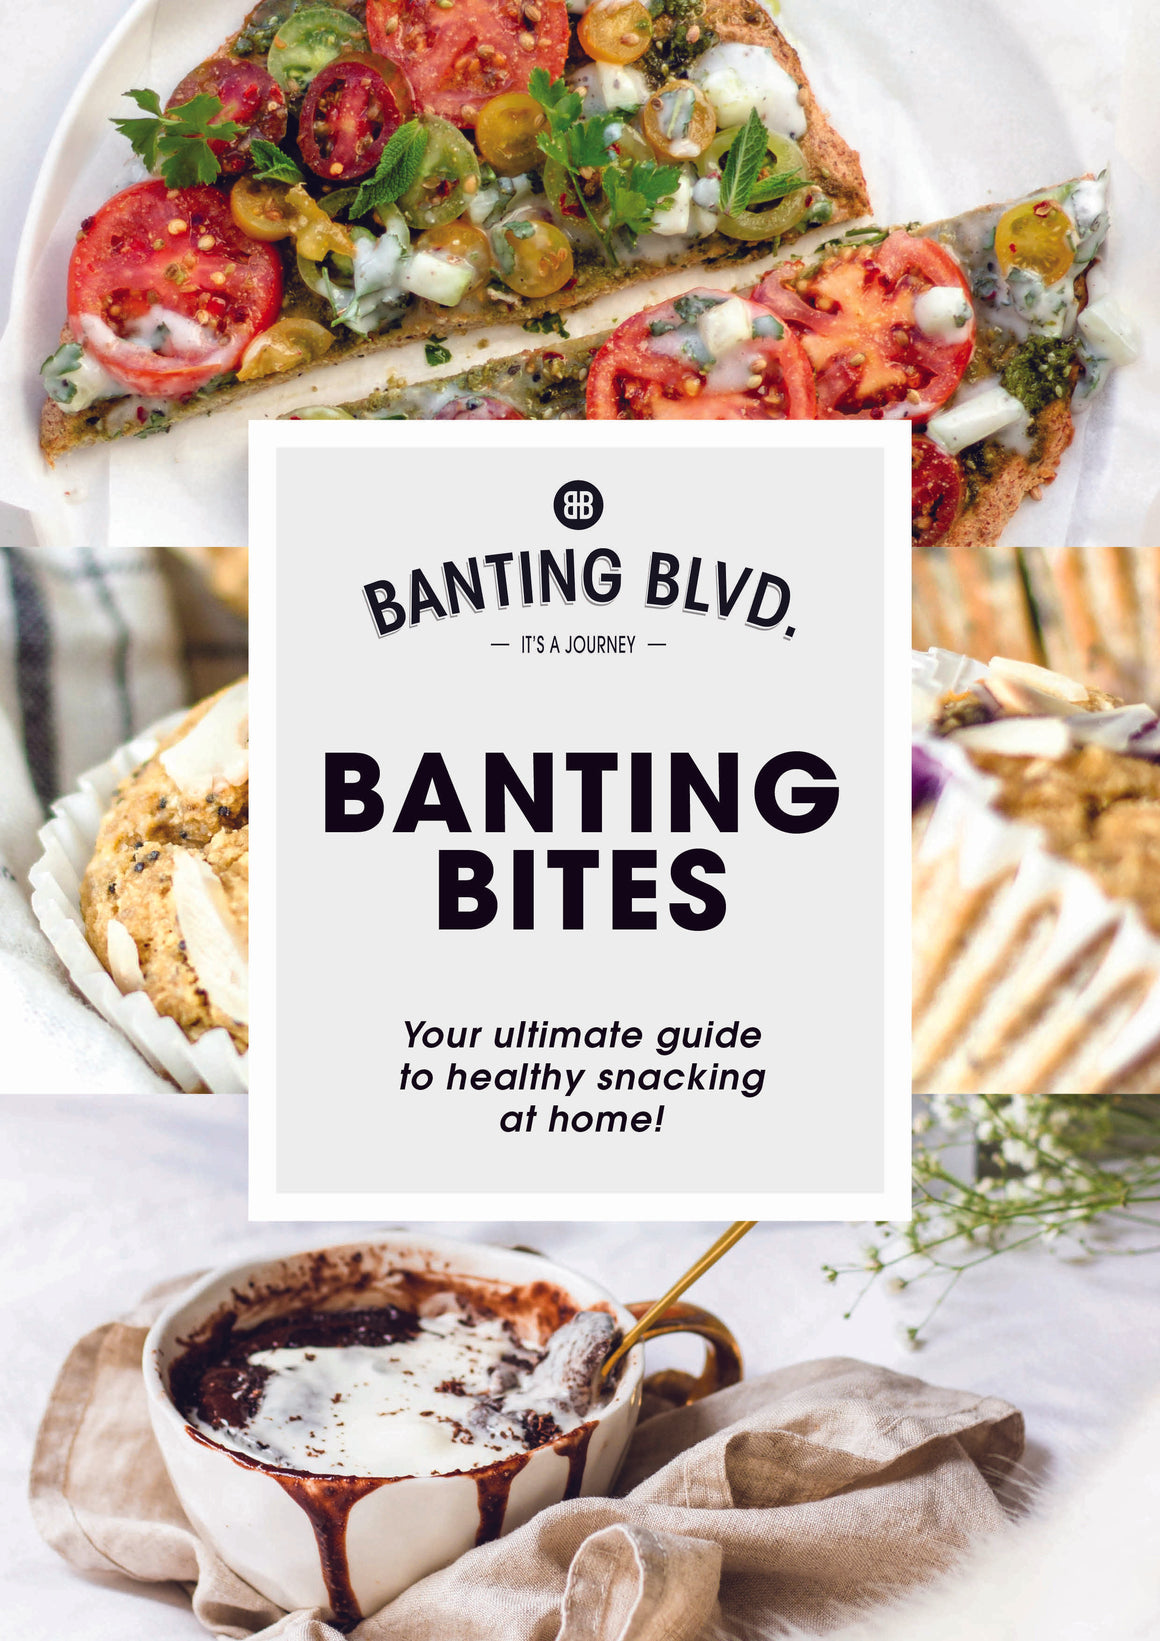 FREE eBOOK: Banting Bites by Banting Blvd